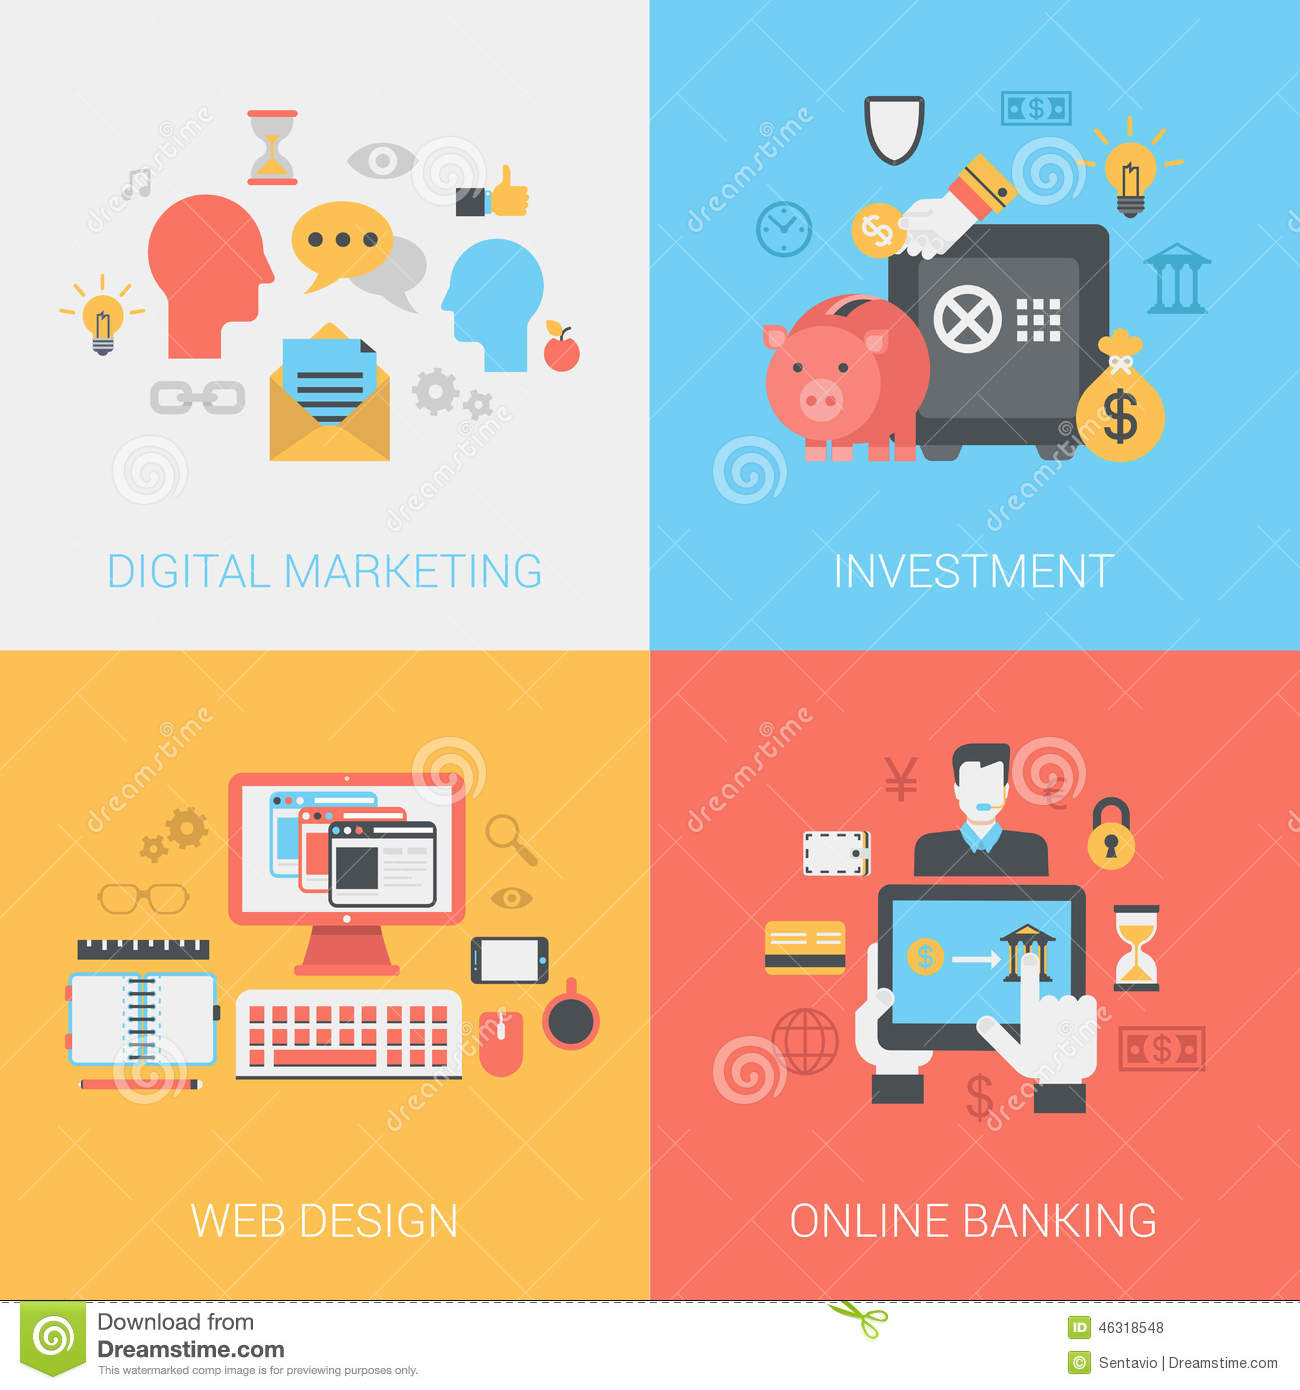 Digital marketing investments web design online banking for Online designs